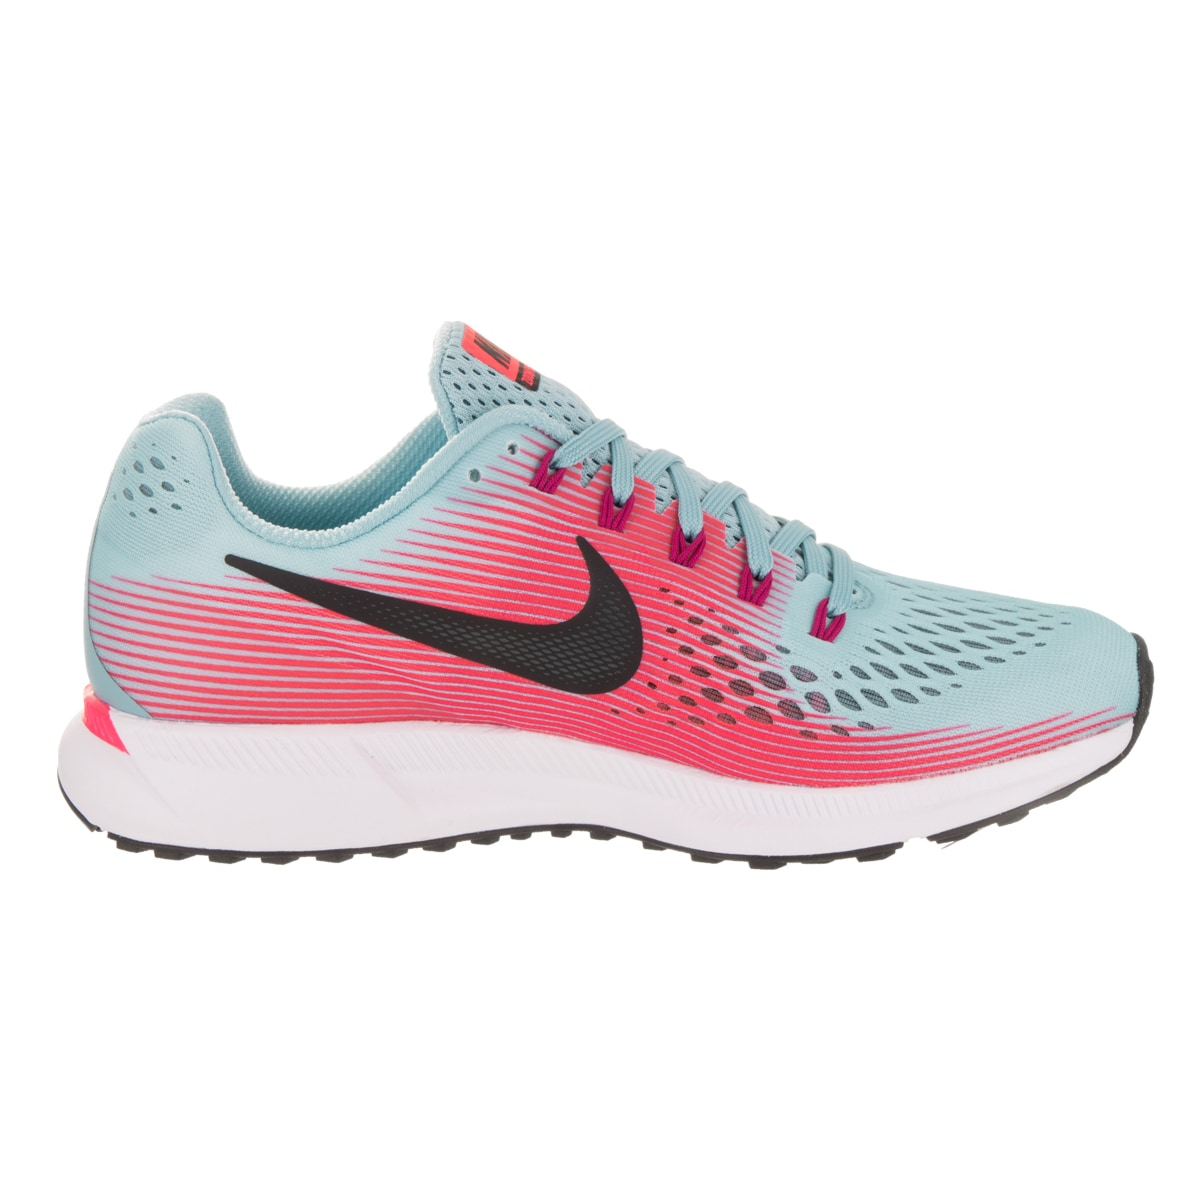 e229f2eb30b24 inexpensive shop nike womens air zoom pegasus 34 blue pink synthetic  leather running shoes free shipping